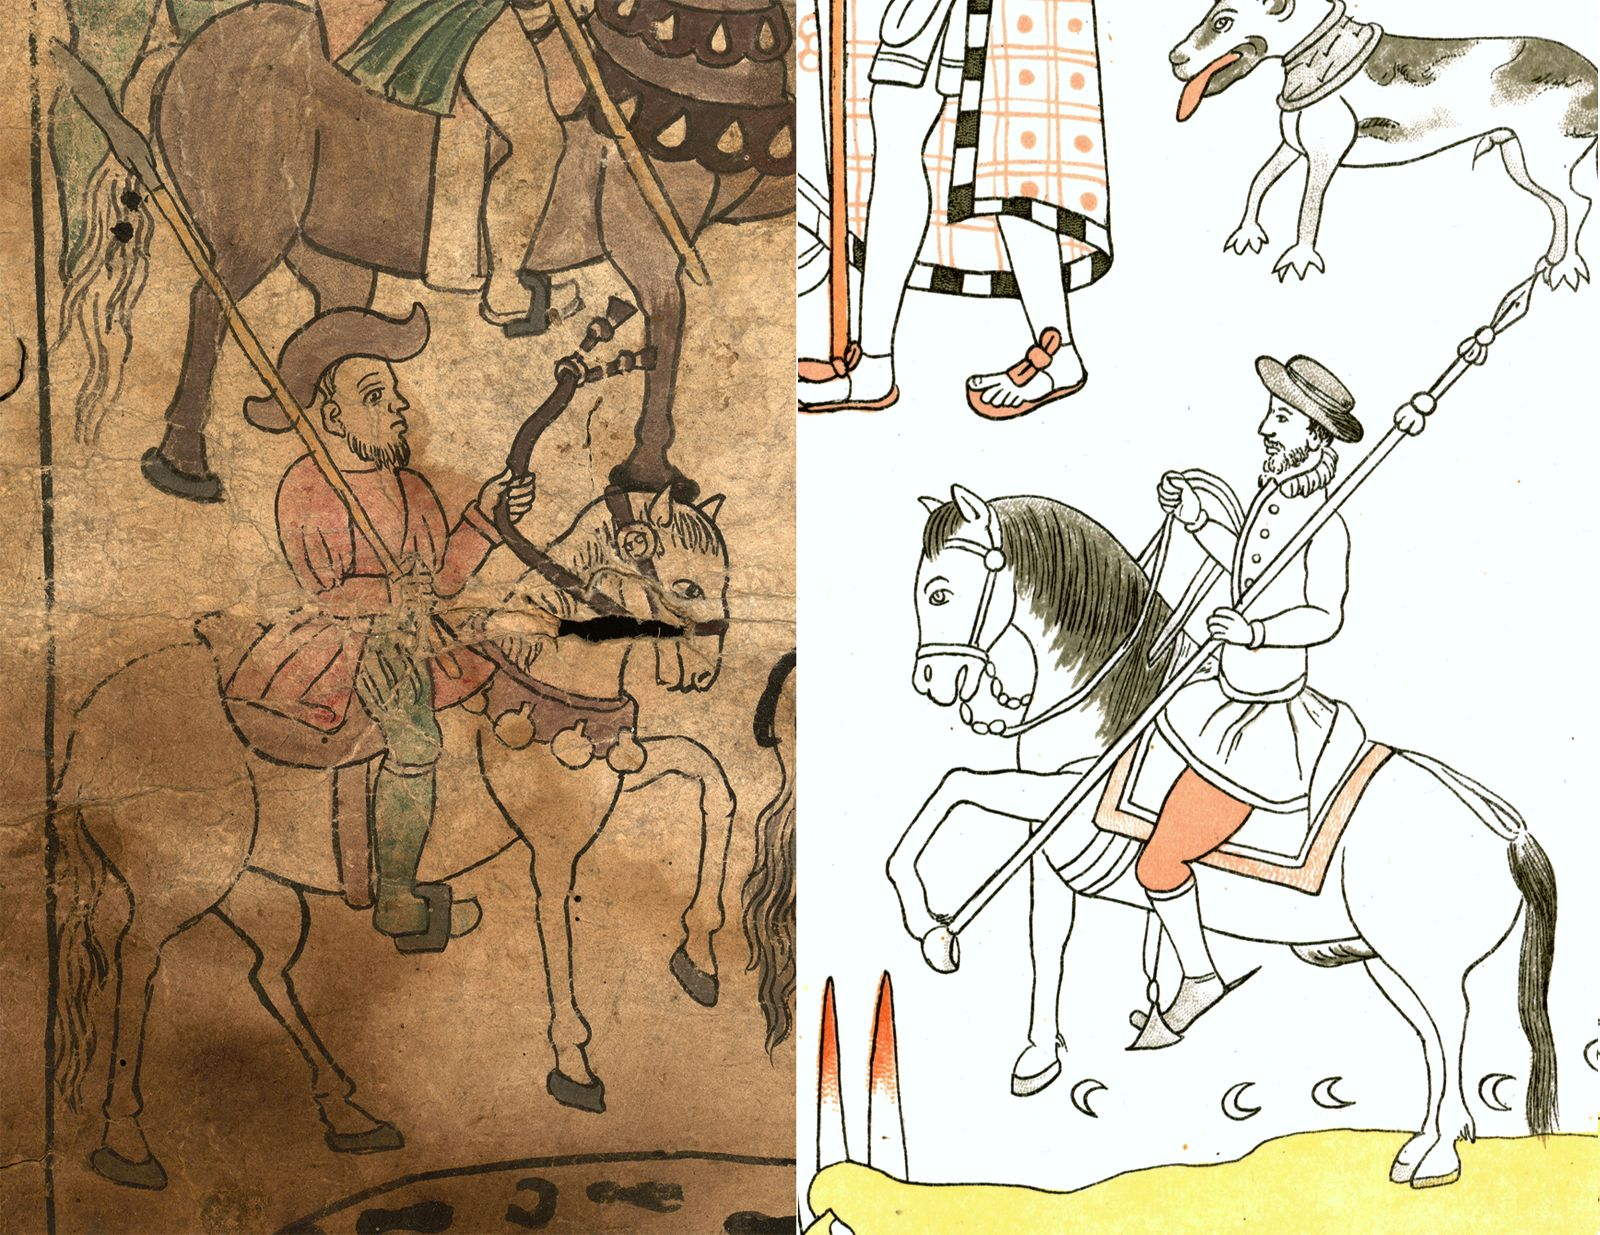 FIGURE 11. Comparison of drawing style in the Texas Fragment and the Lienzo de Tlaxcala: a mounted European (cell 10).